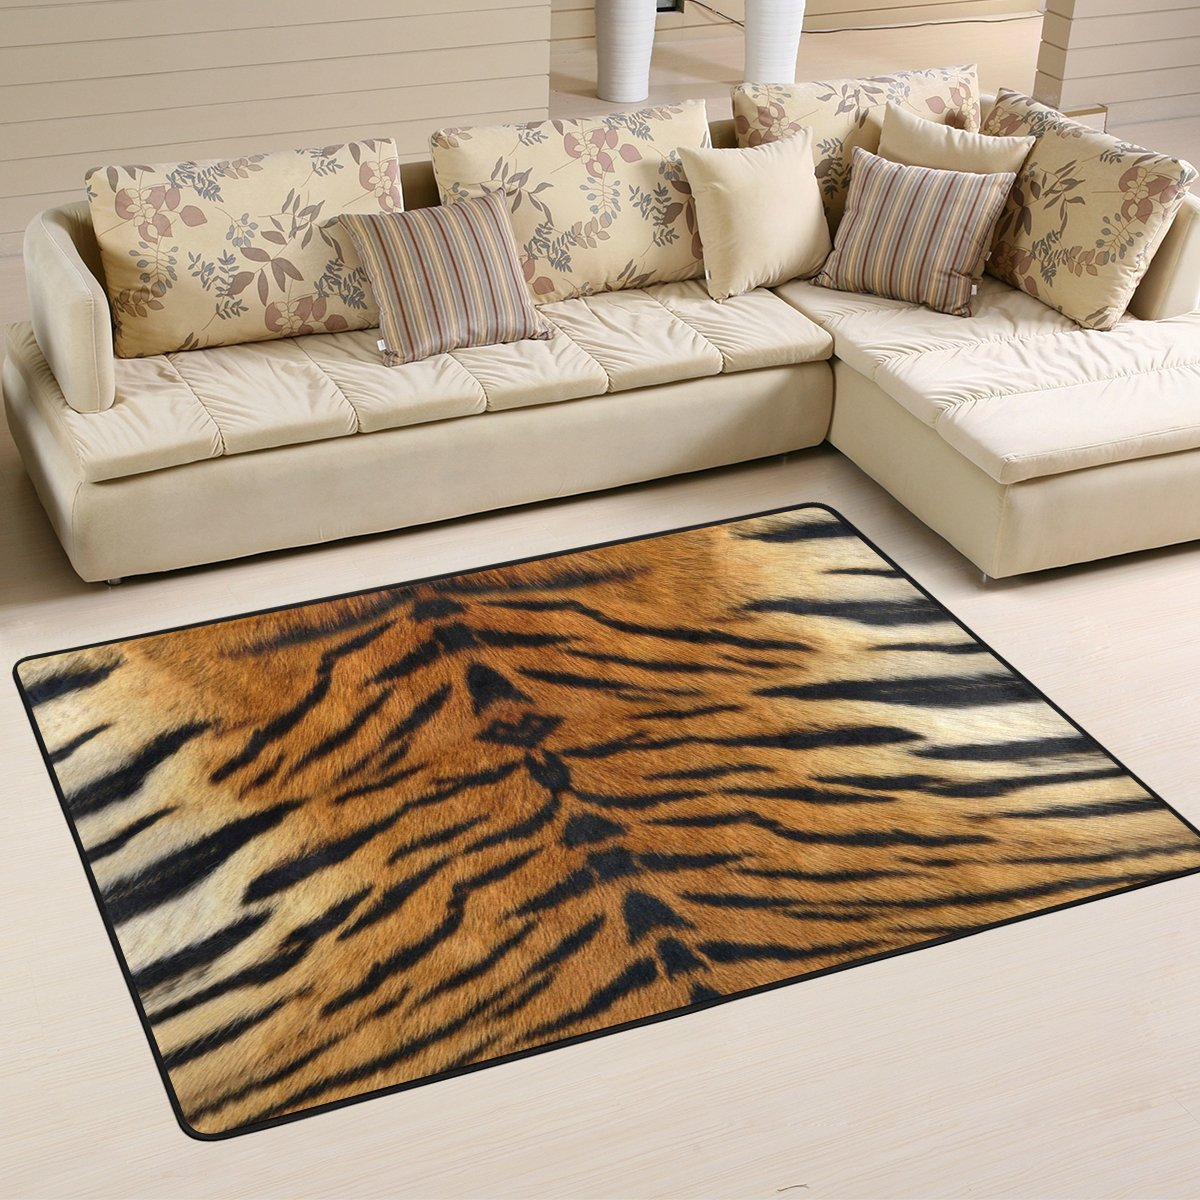 Naanle Animal Print Area Rug 2'x3', Tiger Print Polyester Area Rug Mat for Living Dining Dorm Room Bedroom Home Decorative